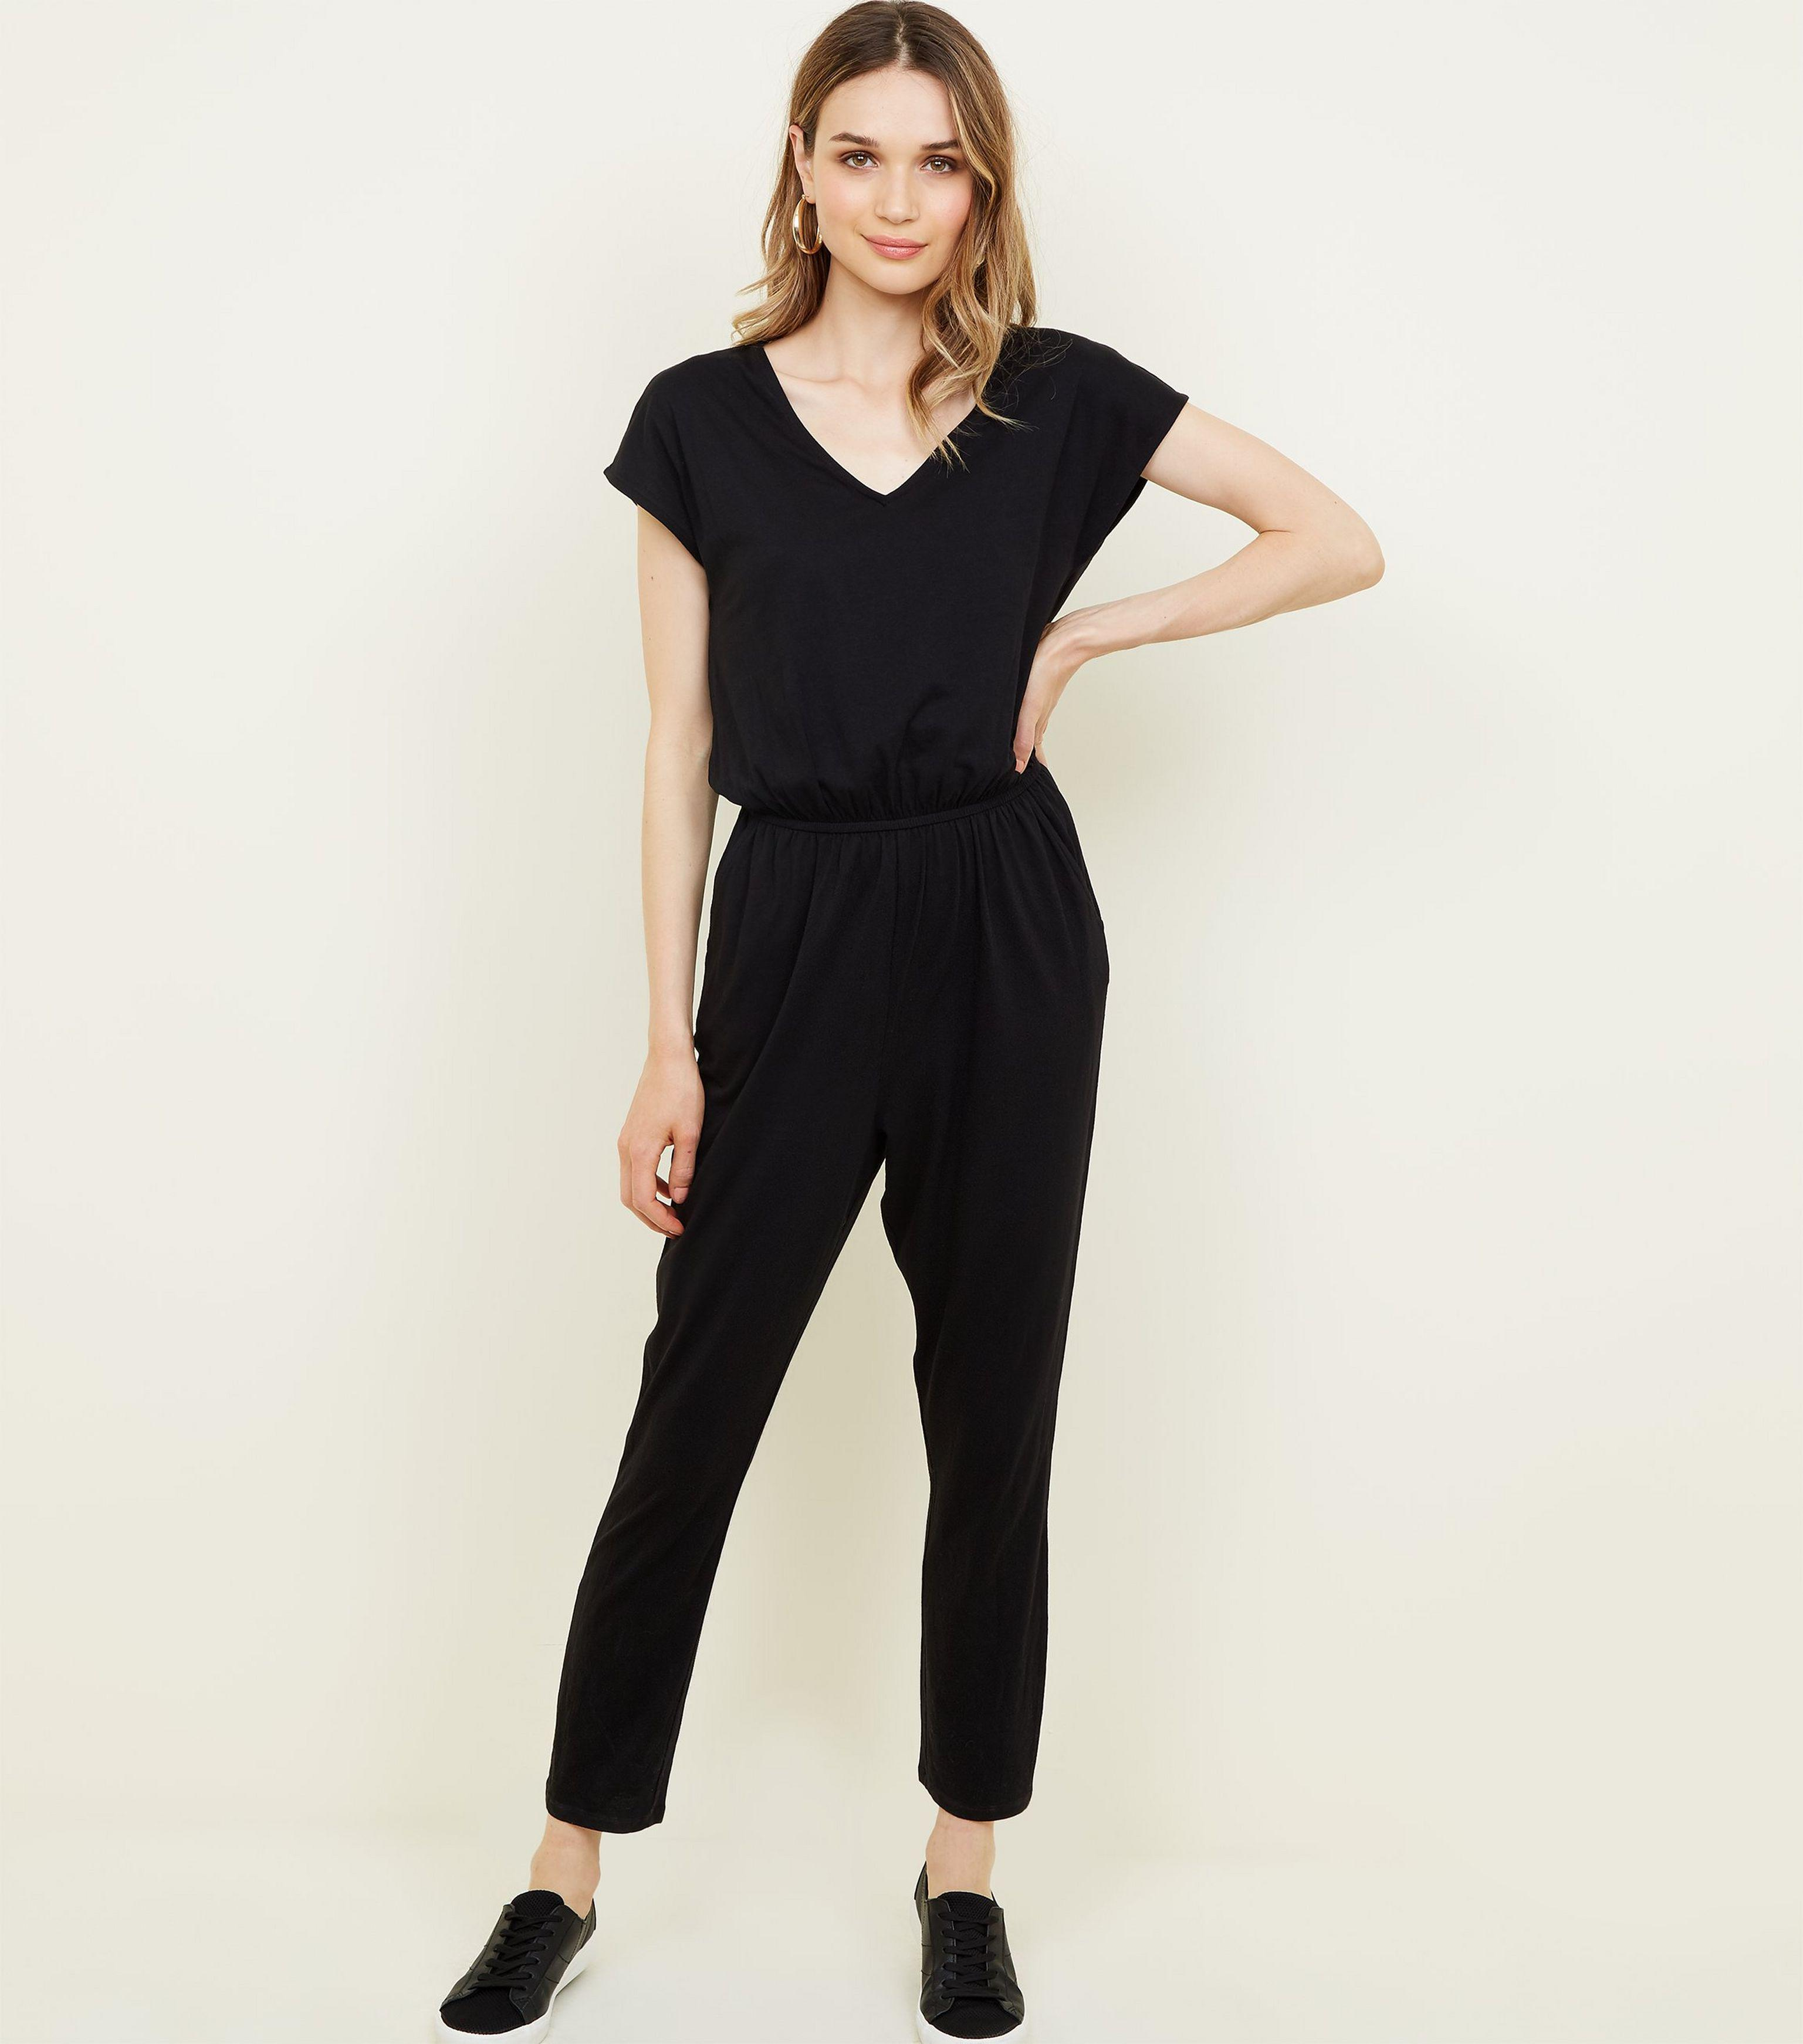 70bc95a4558 New Look Black Cap Sleeve Jersey Jumpsuit in Black - Lyst